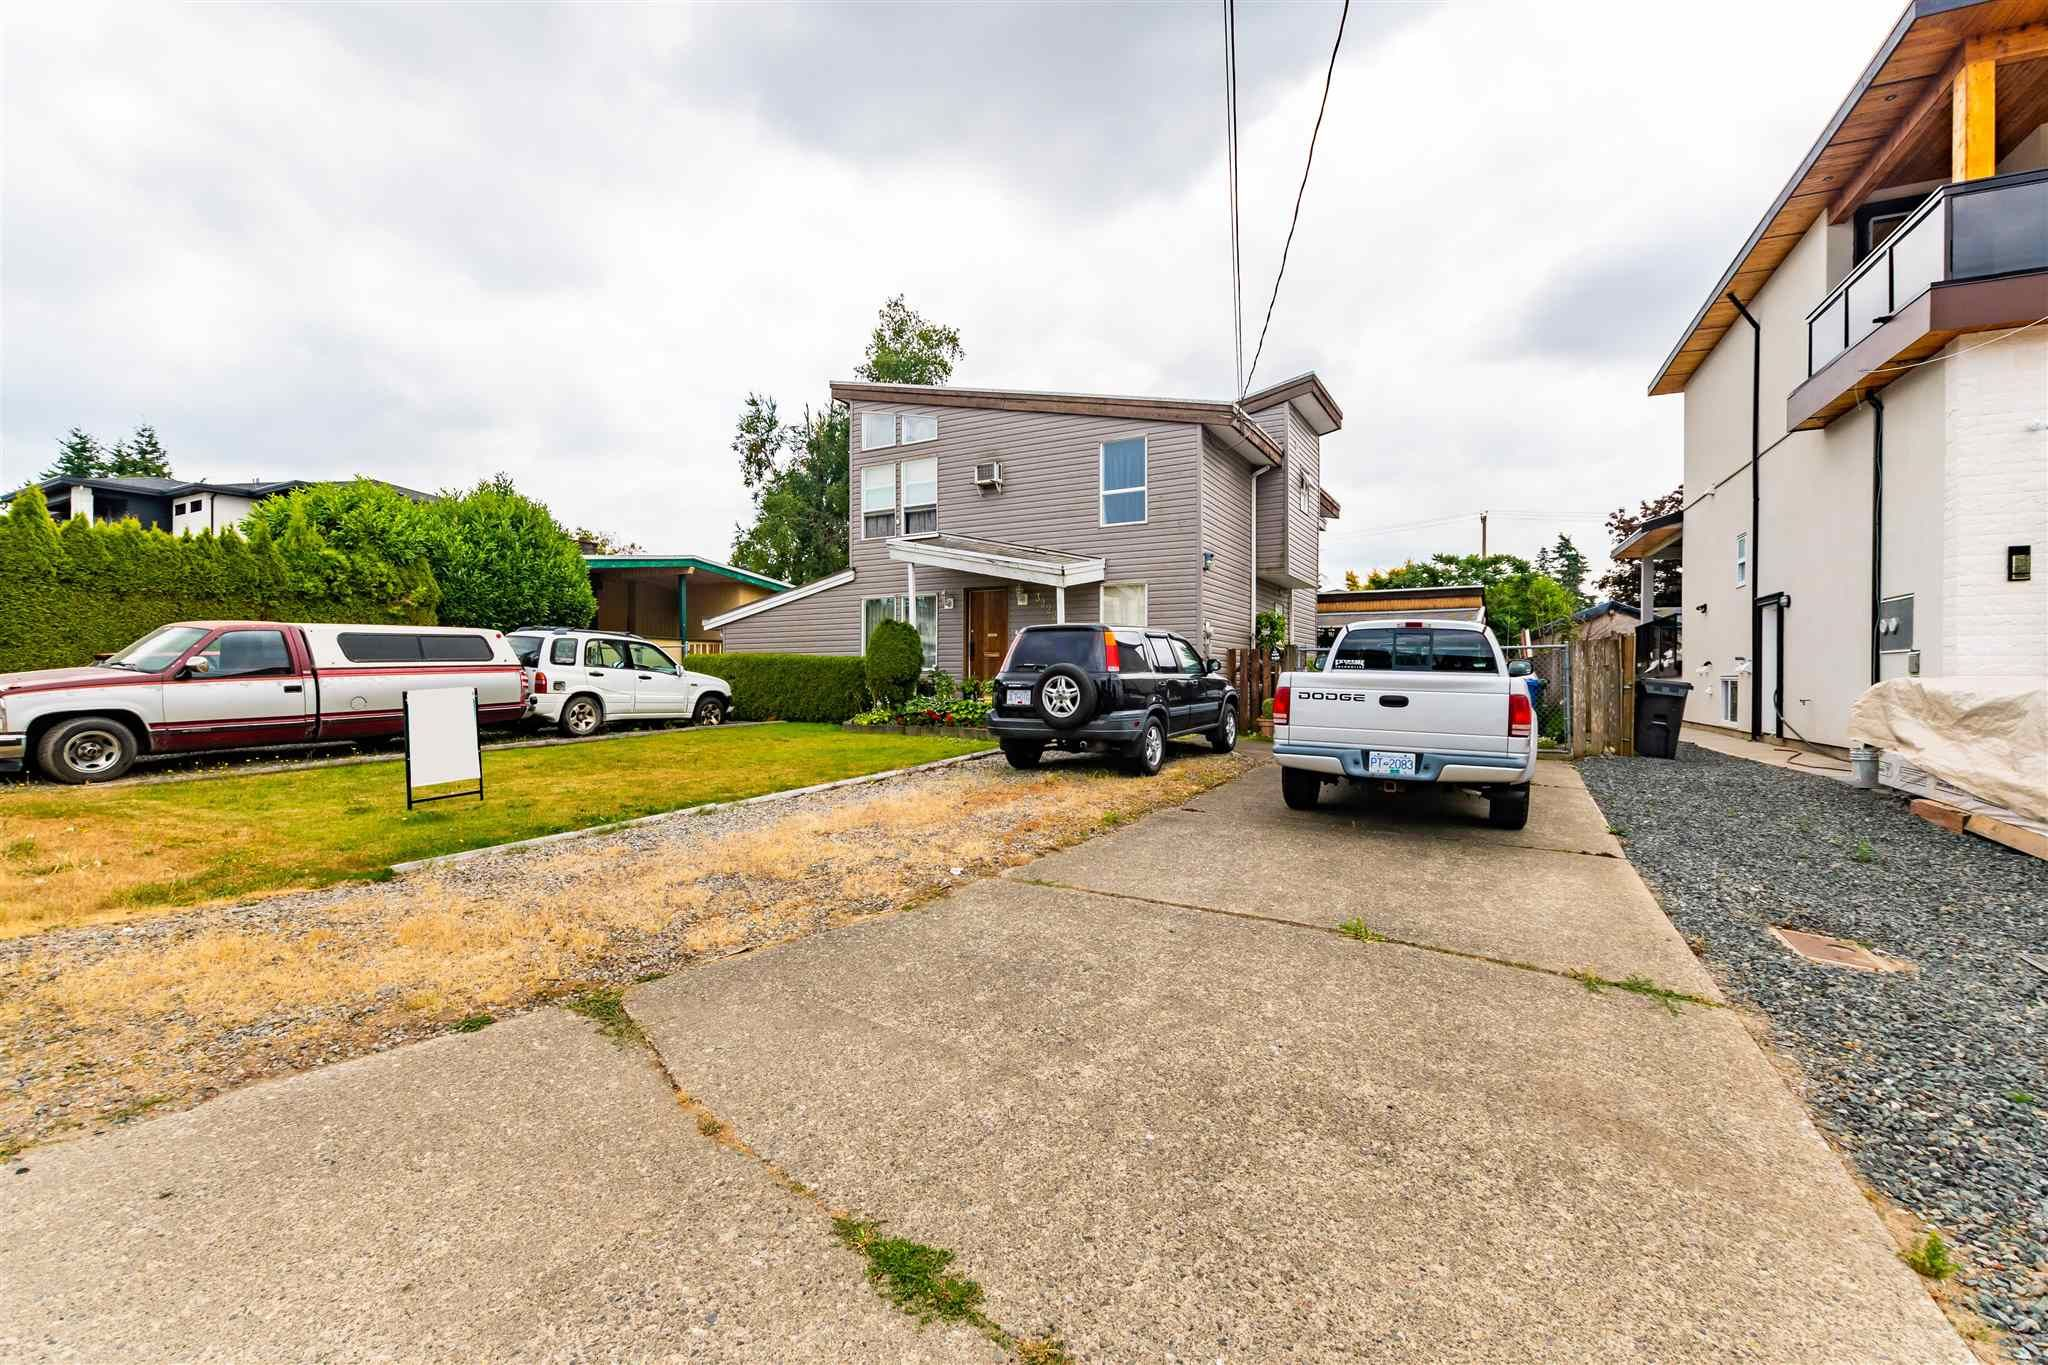 Main Photo: 32224 PINEVIEW AVENUE in Abbotsford: Abbotsford West House for sale : MLS®# R2599381